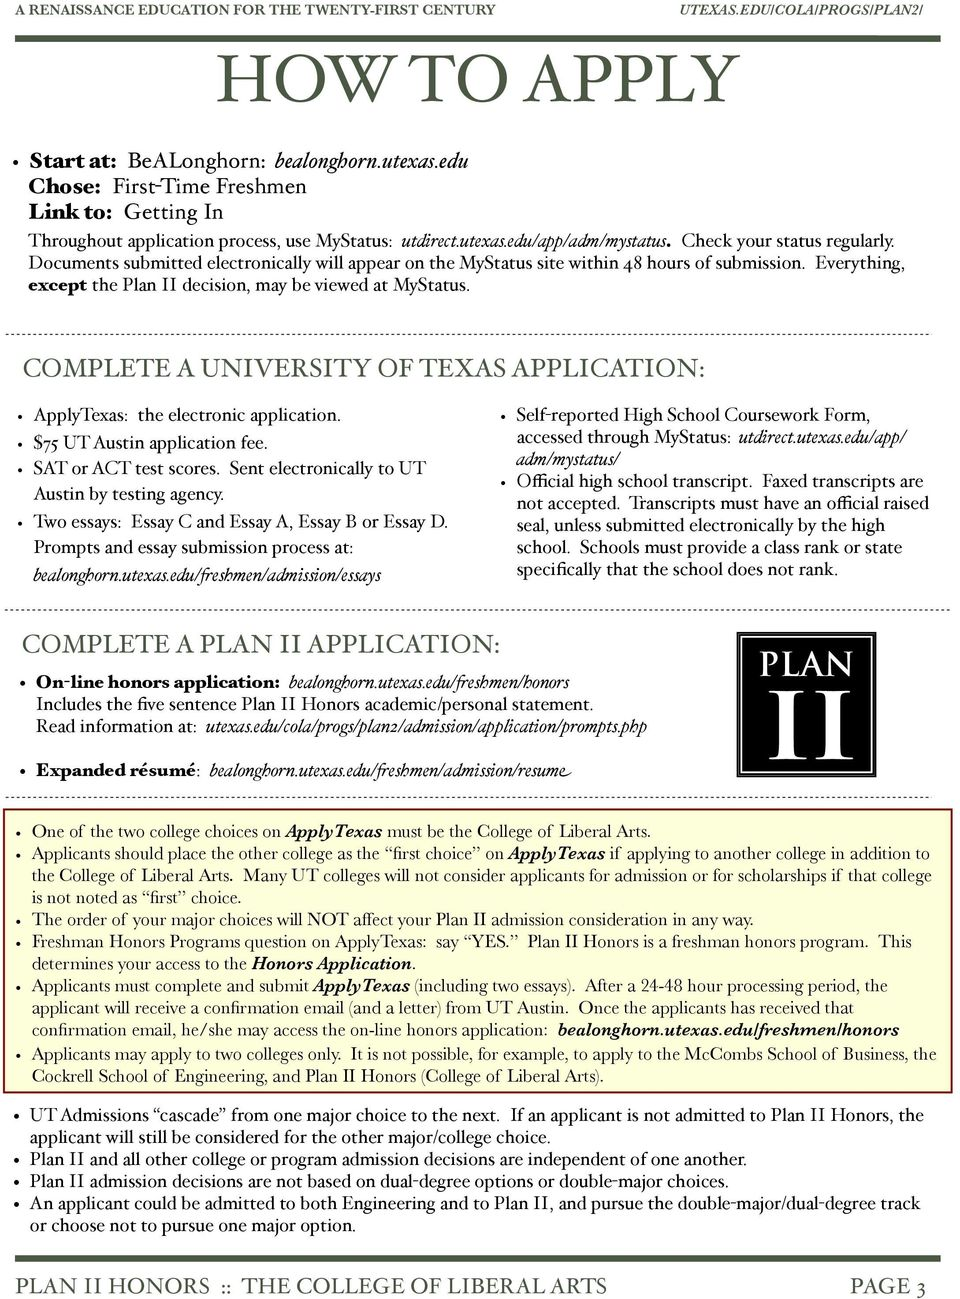 005 Essay Example Fsu Application College Texas Admission P Examples Florida State Remarkable Sample Full